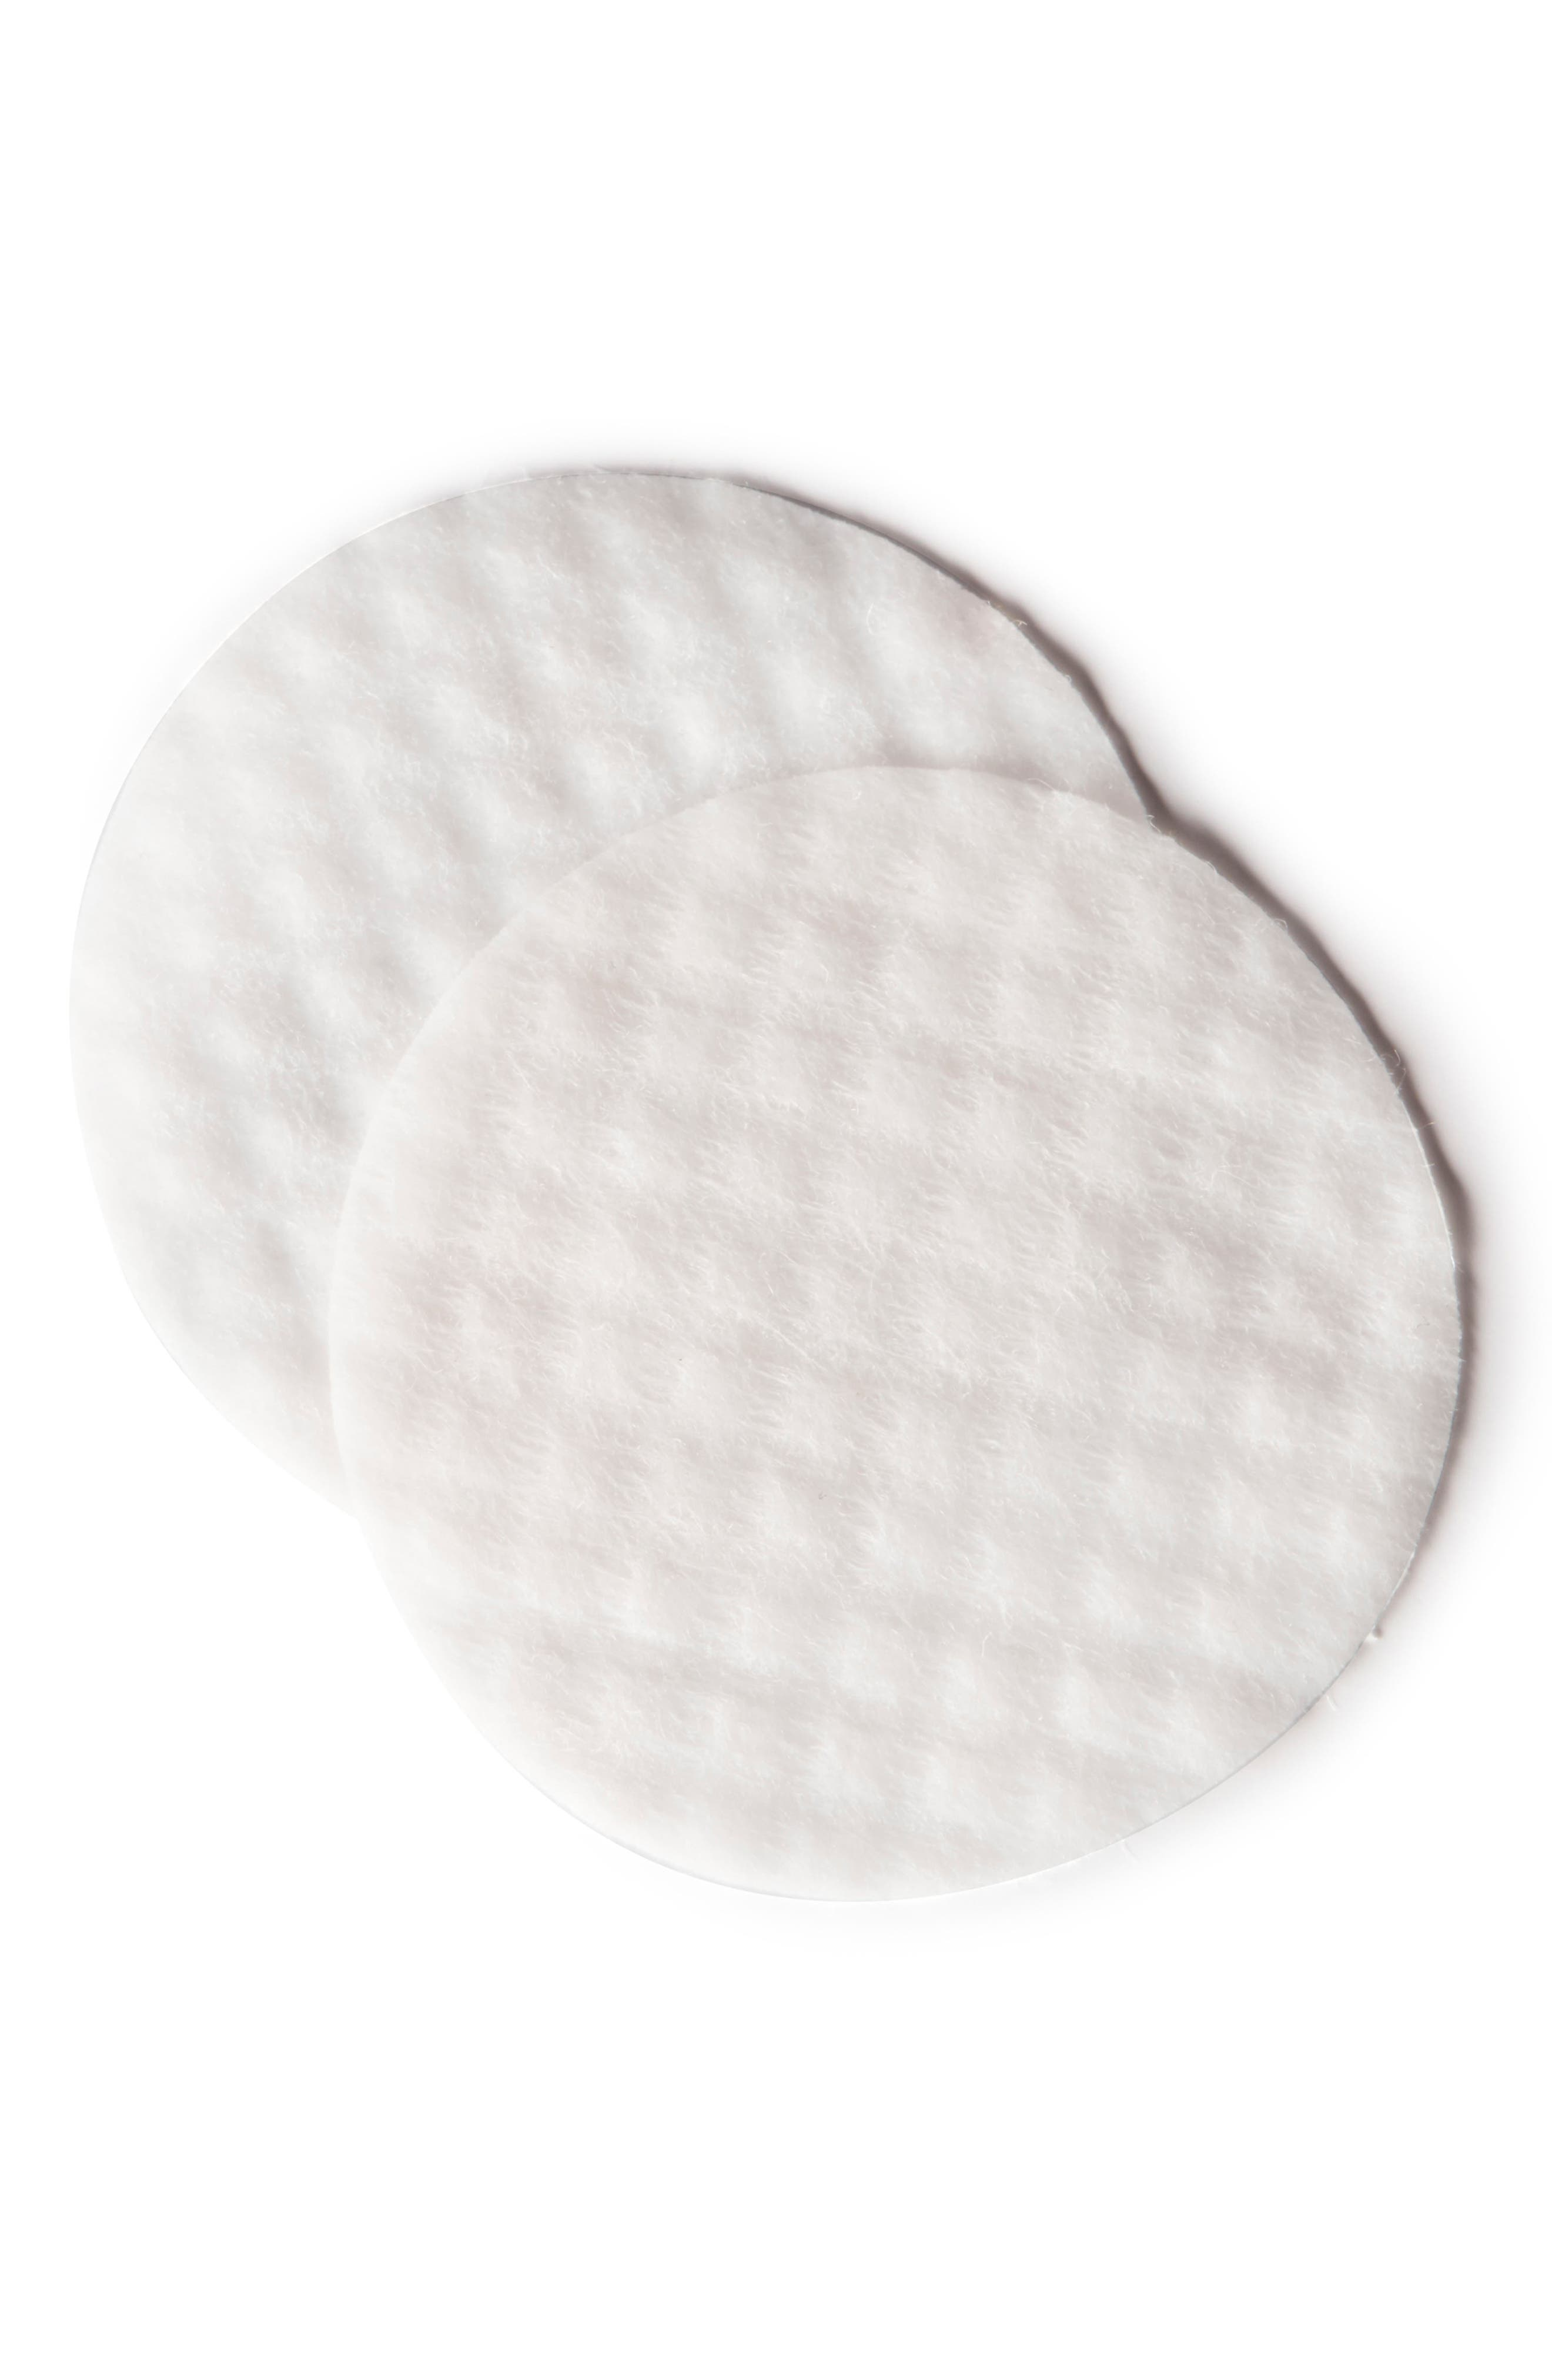 ELEMIS,                             Dynamic Resurfacing Pads,                             Alternate thumbnail 2, color,                             NO COLOR